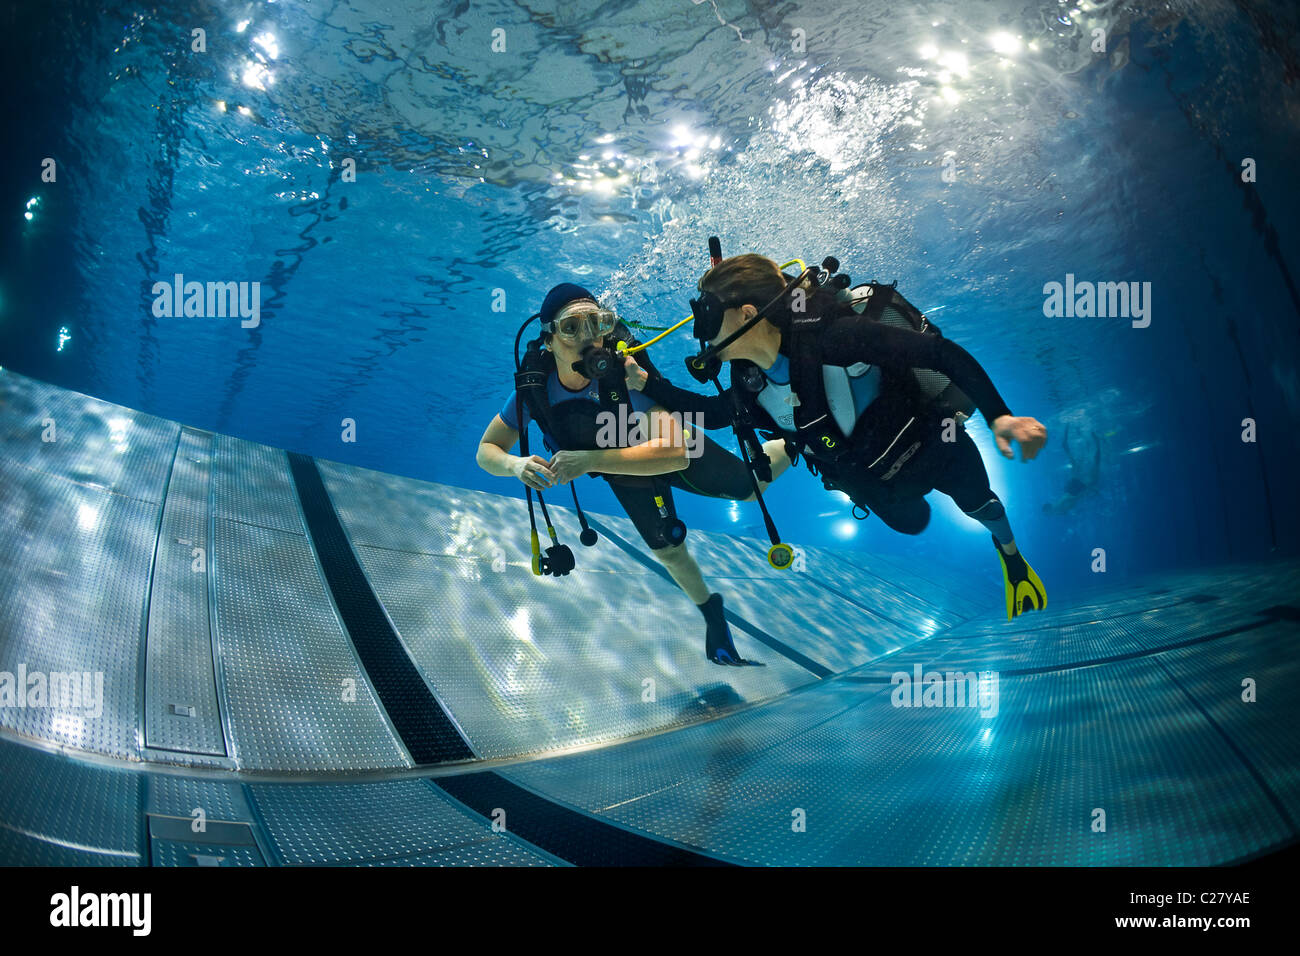 A Scuba Diving Training Session In A Swimming Pool France Scuba Stock Photo Royalty Free